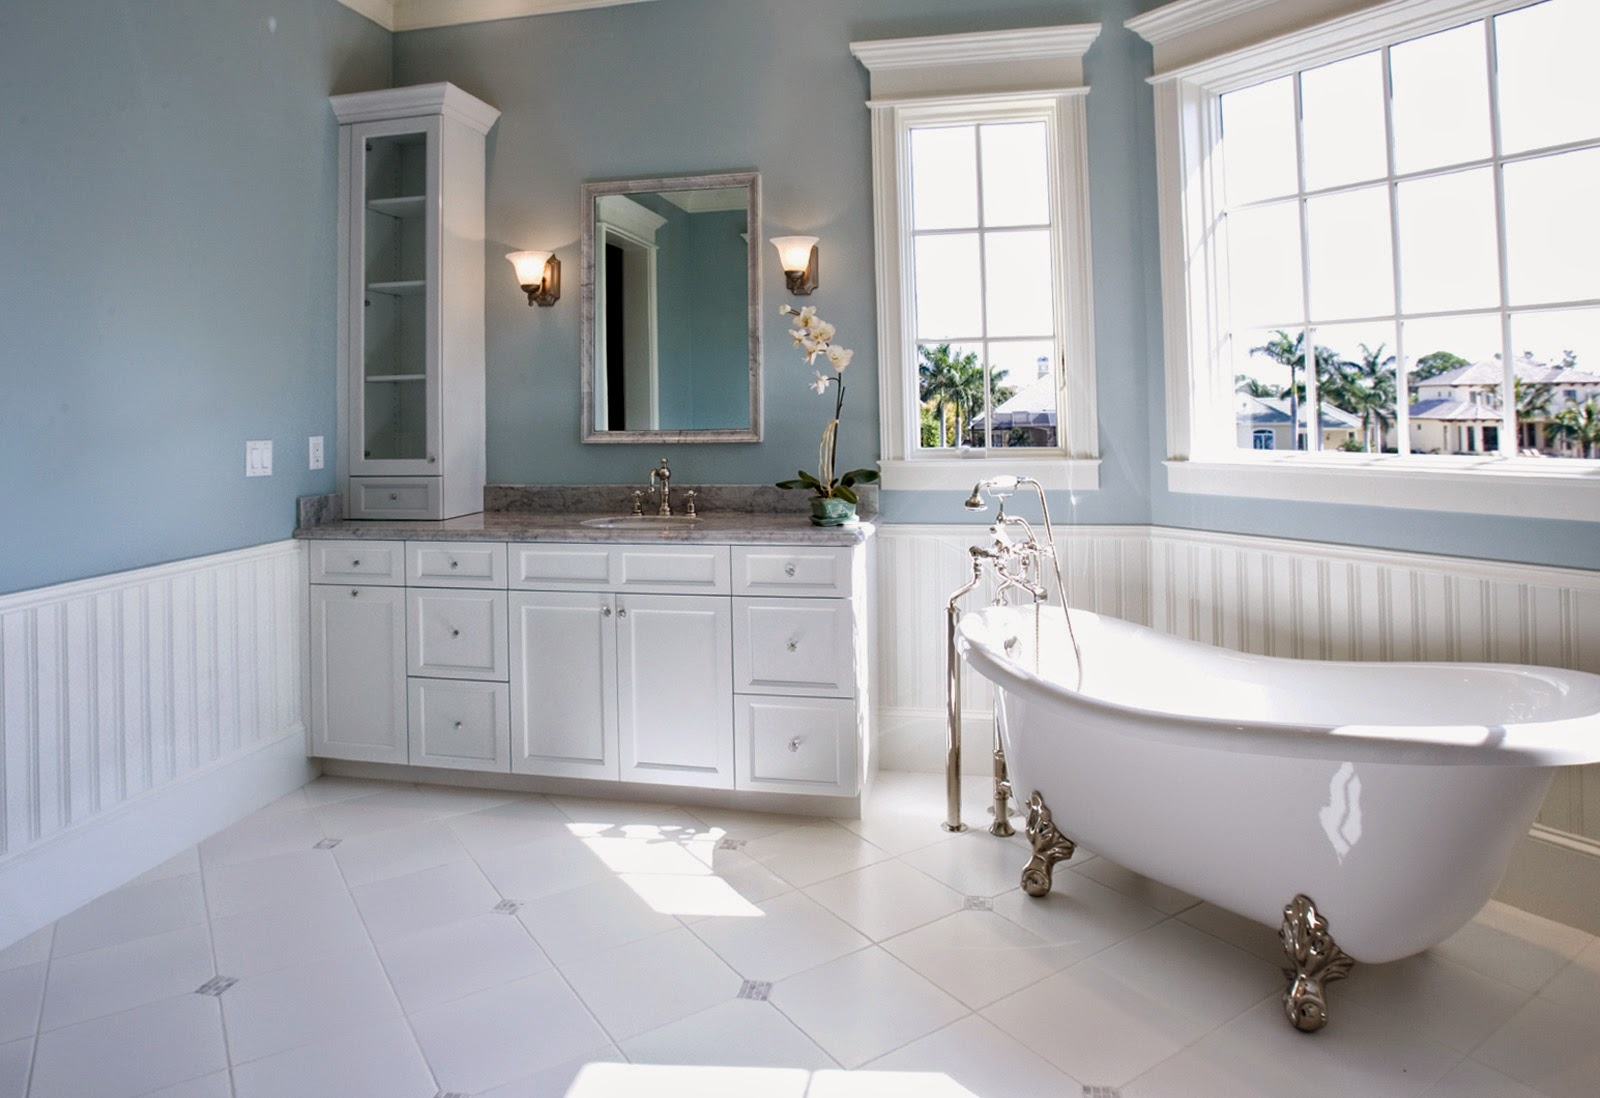 TOP 10 Beautiful Bathroom Design 2014